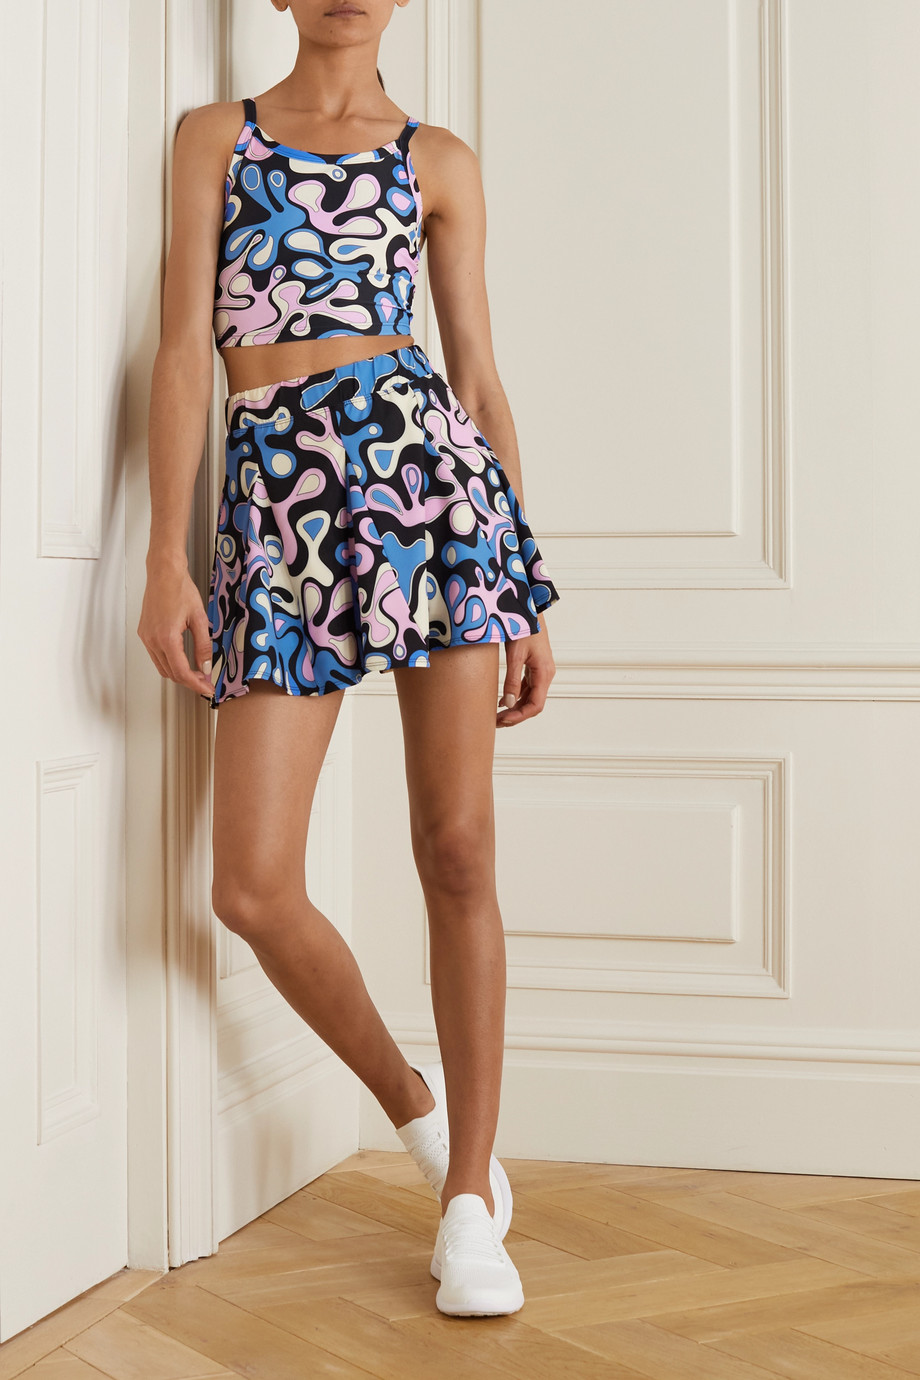 Year of Ours Splash printed stretch tennis skirt